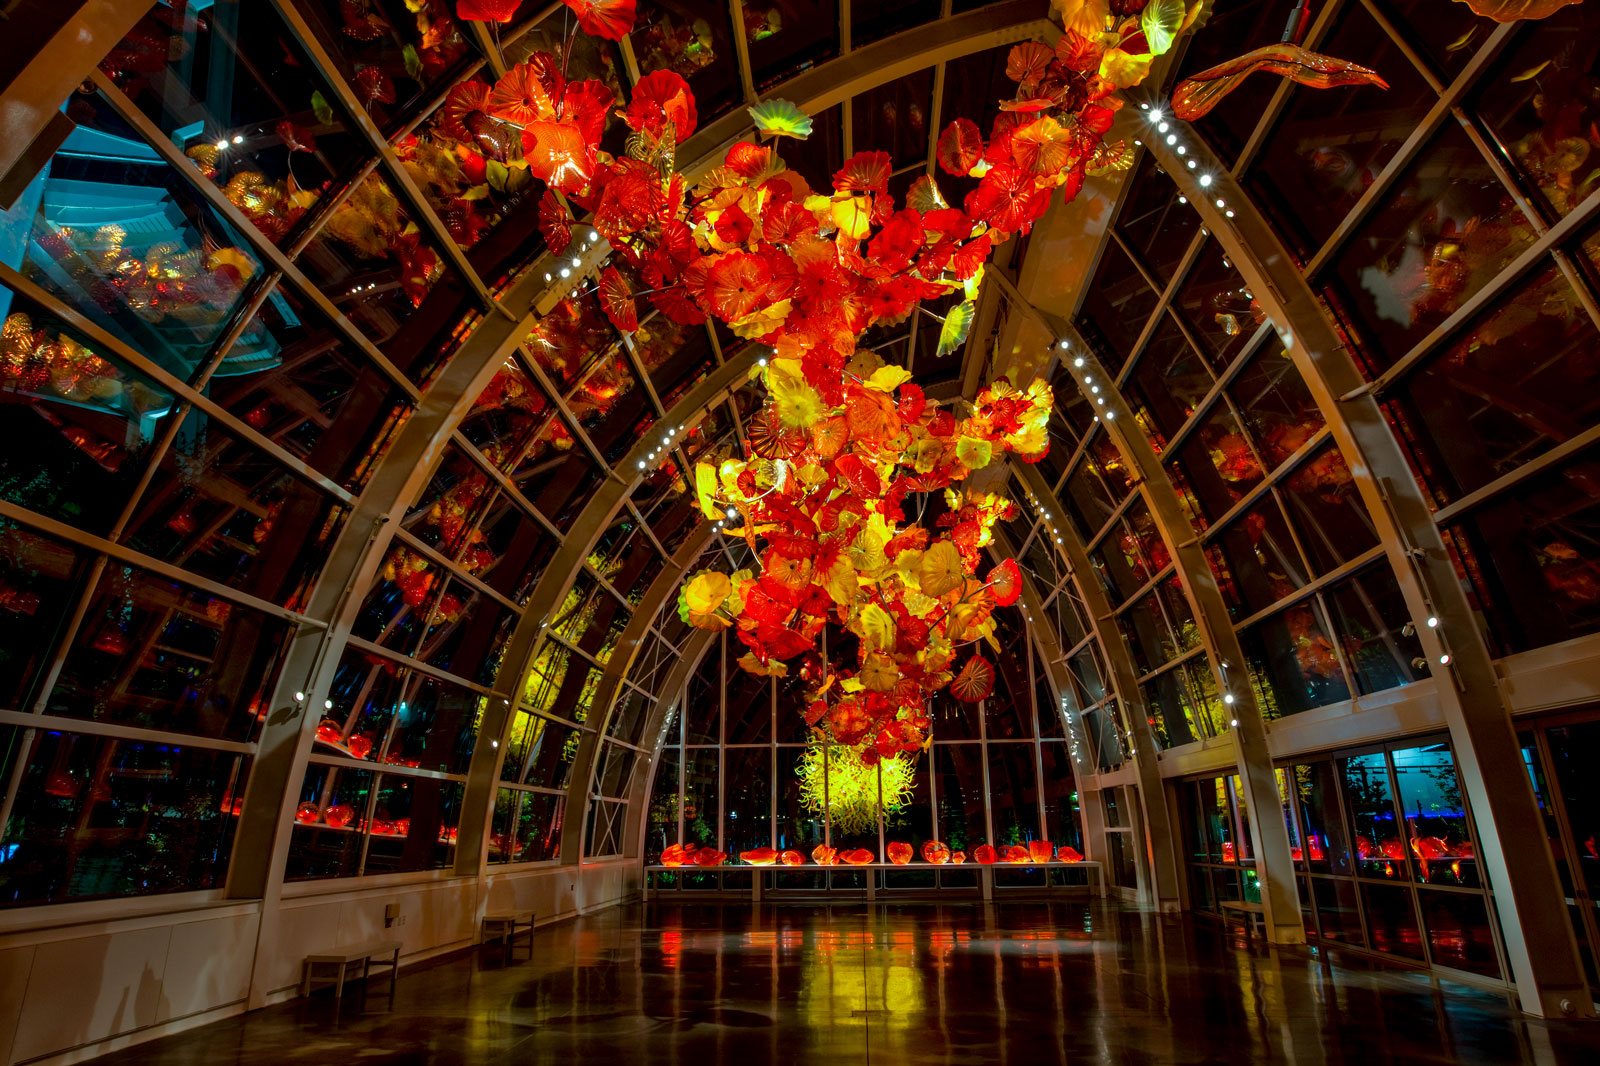 Chihuly Garden and Glass | Chihuly